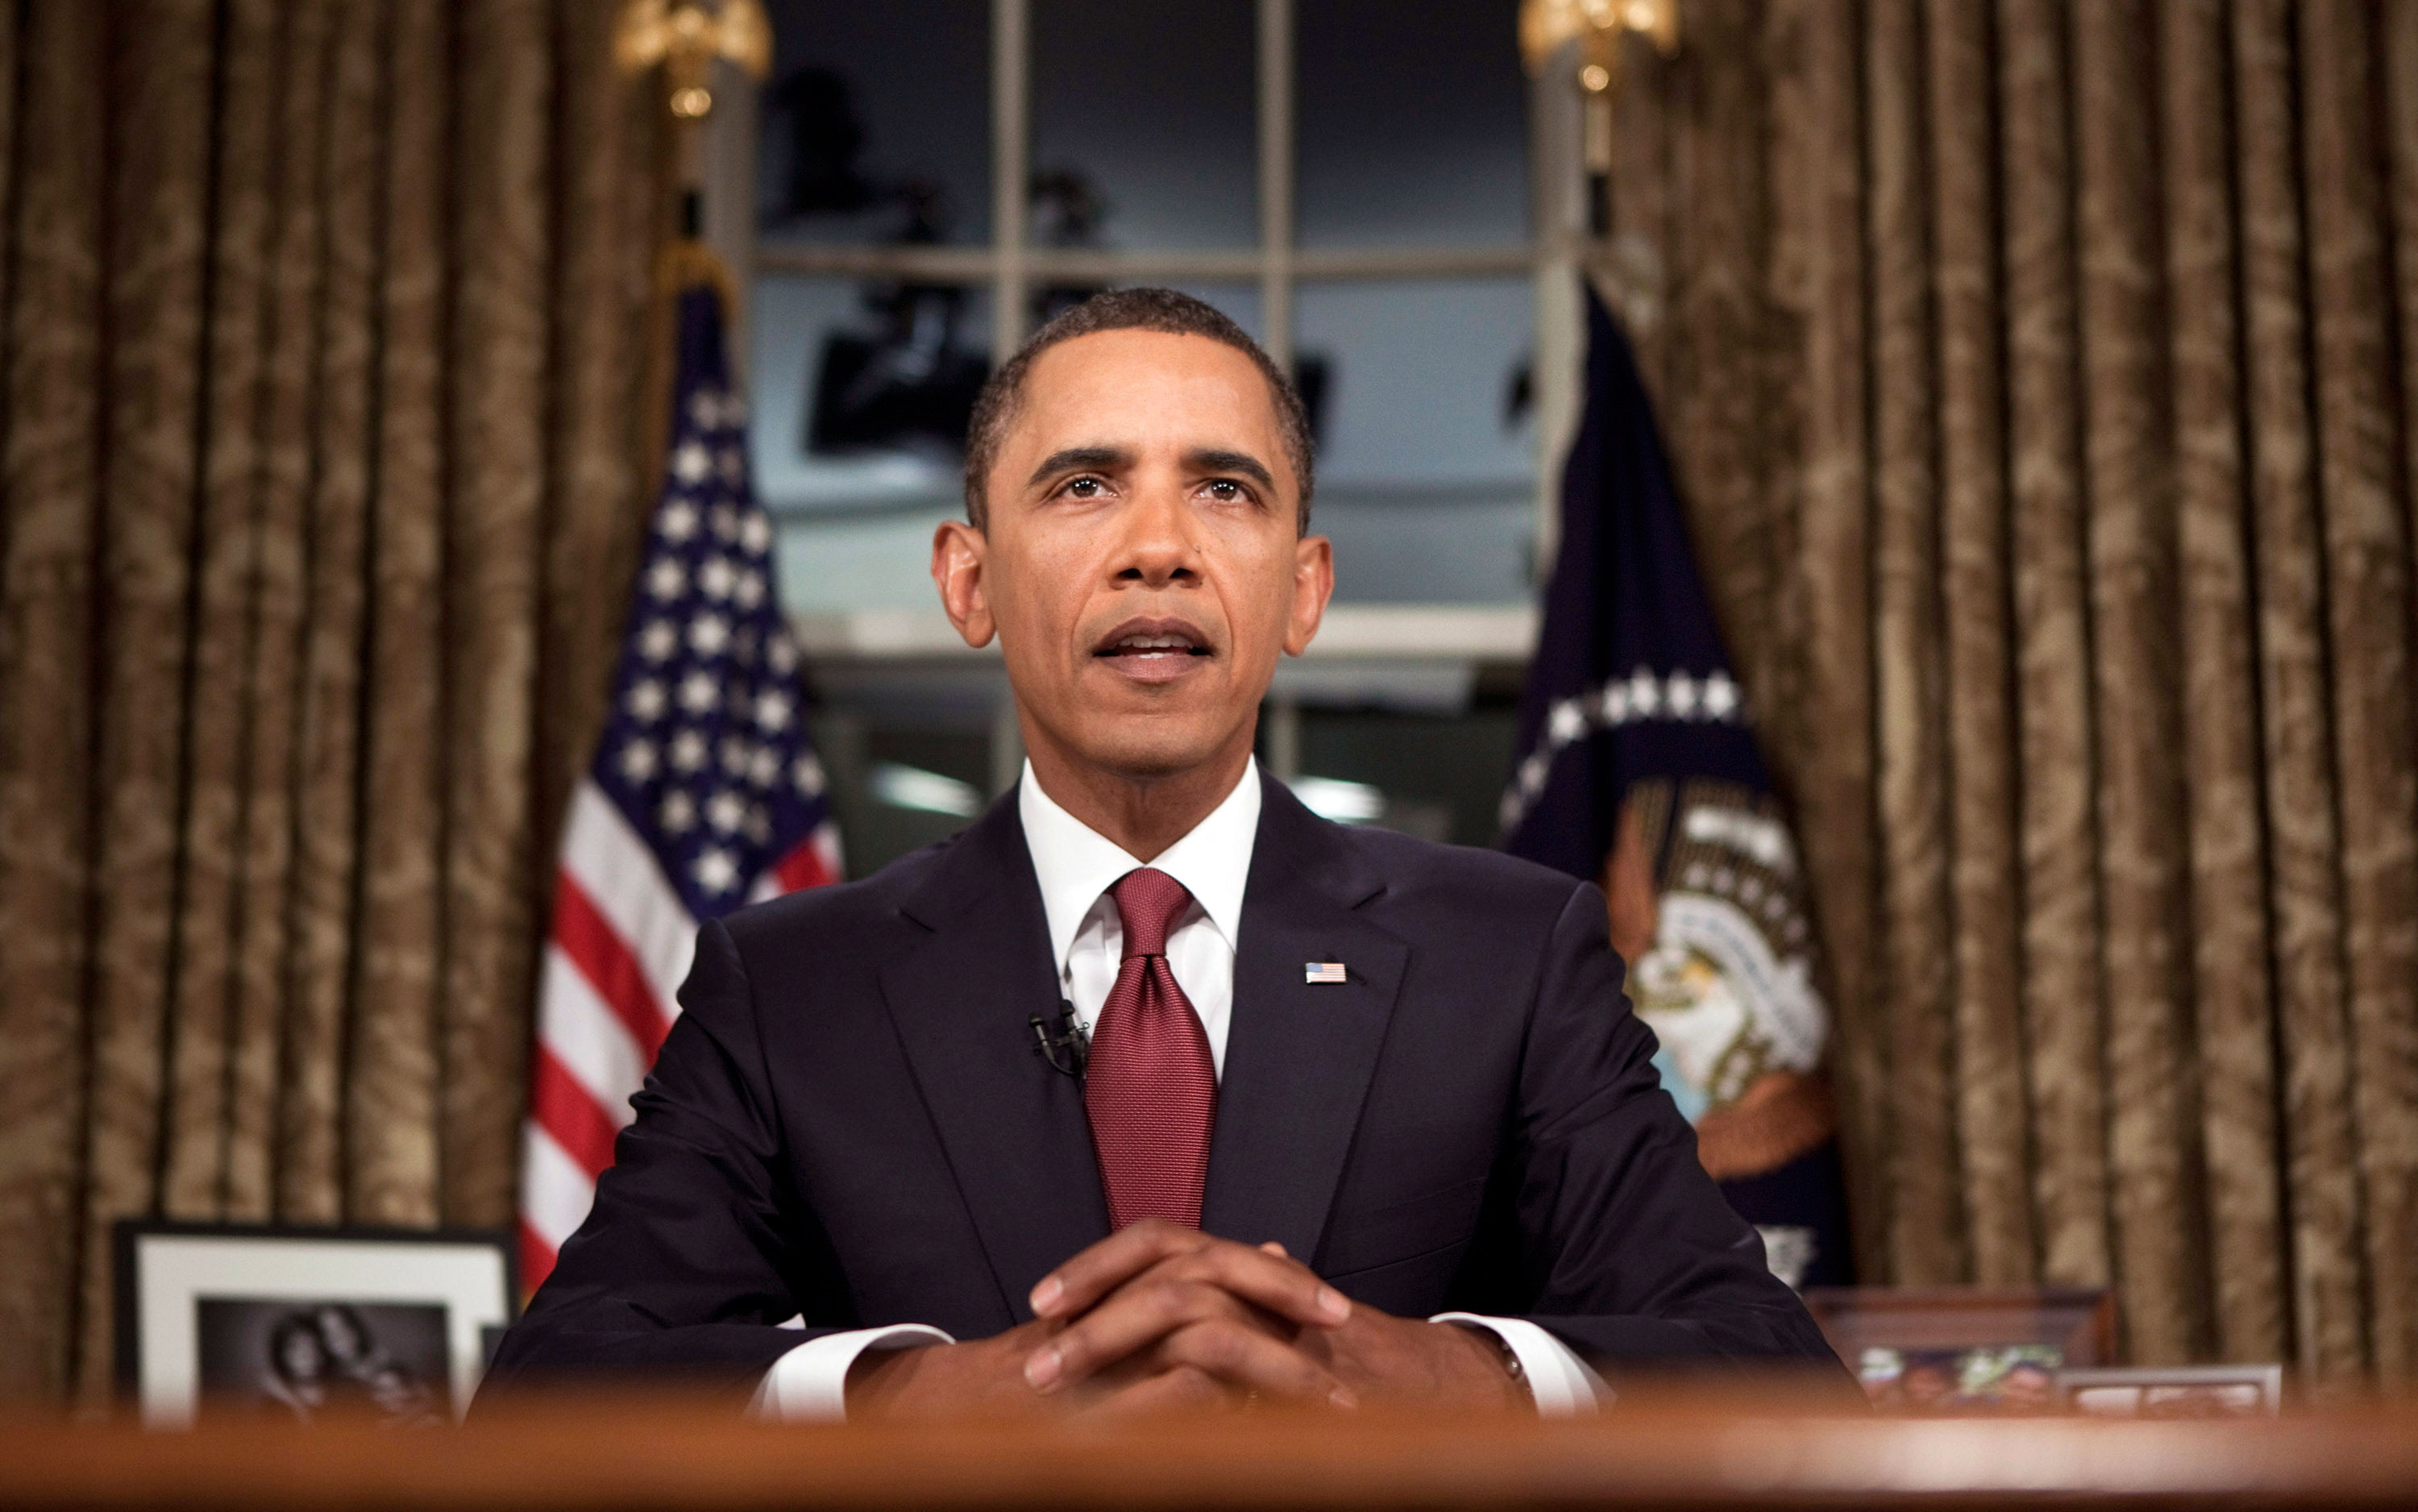 President Obama to Address Nation on Terror: Has He Finally Smelled the Coffee?